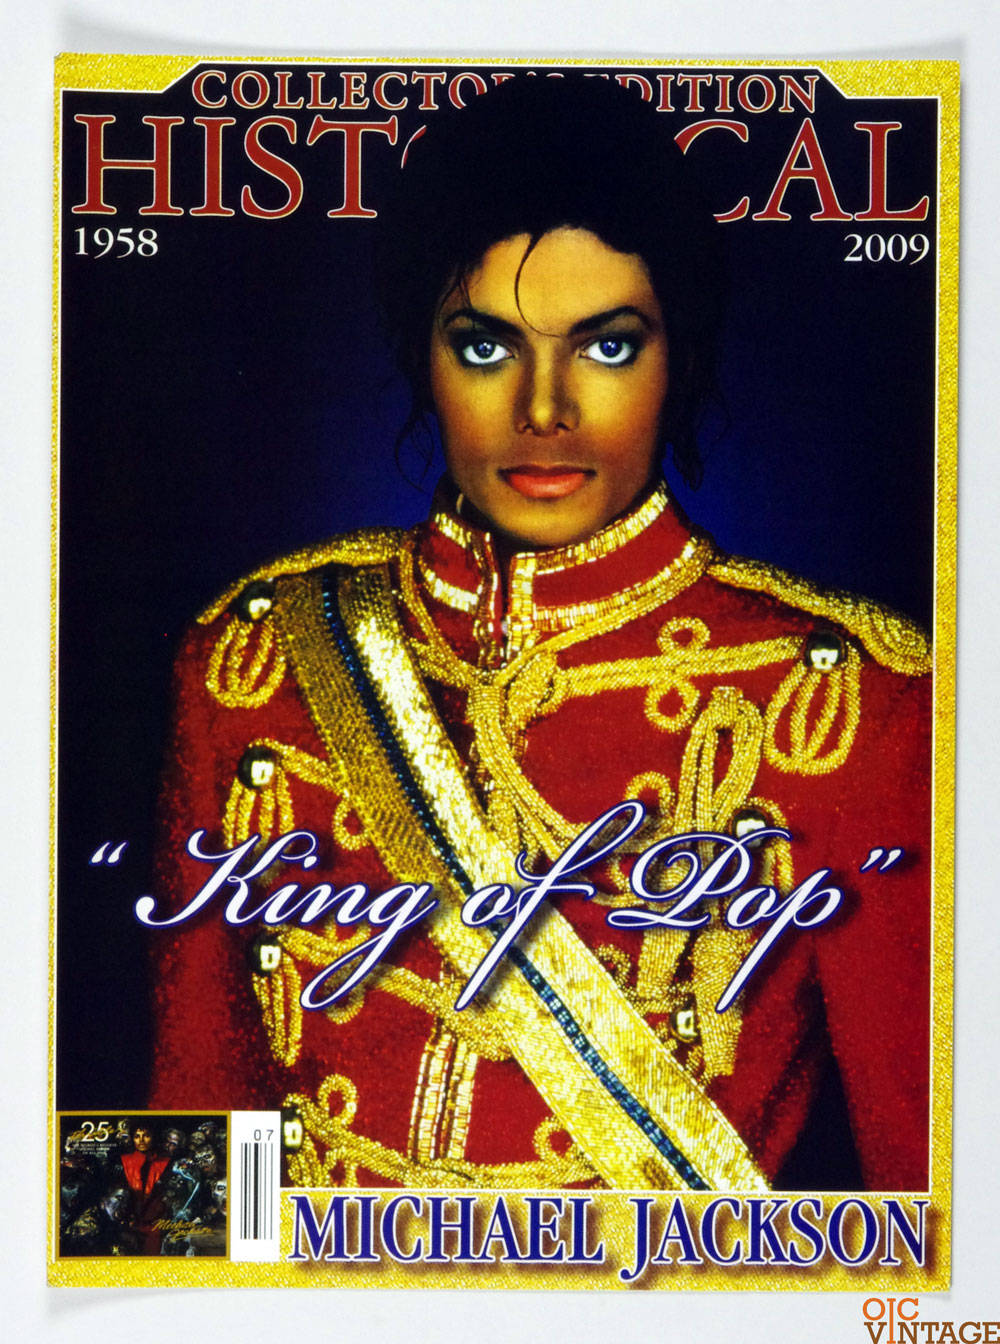 Michael Jackson Poster 2009 Collector Edition King Of Pop Magazine Promotion